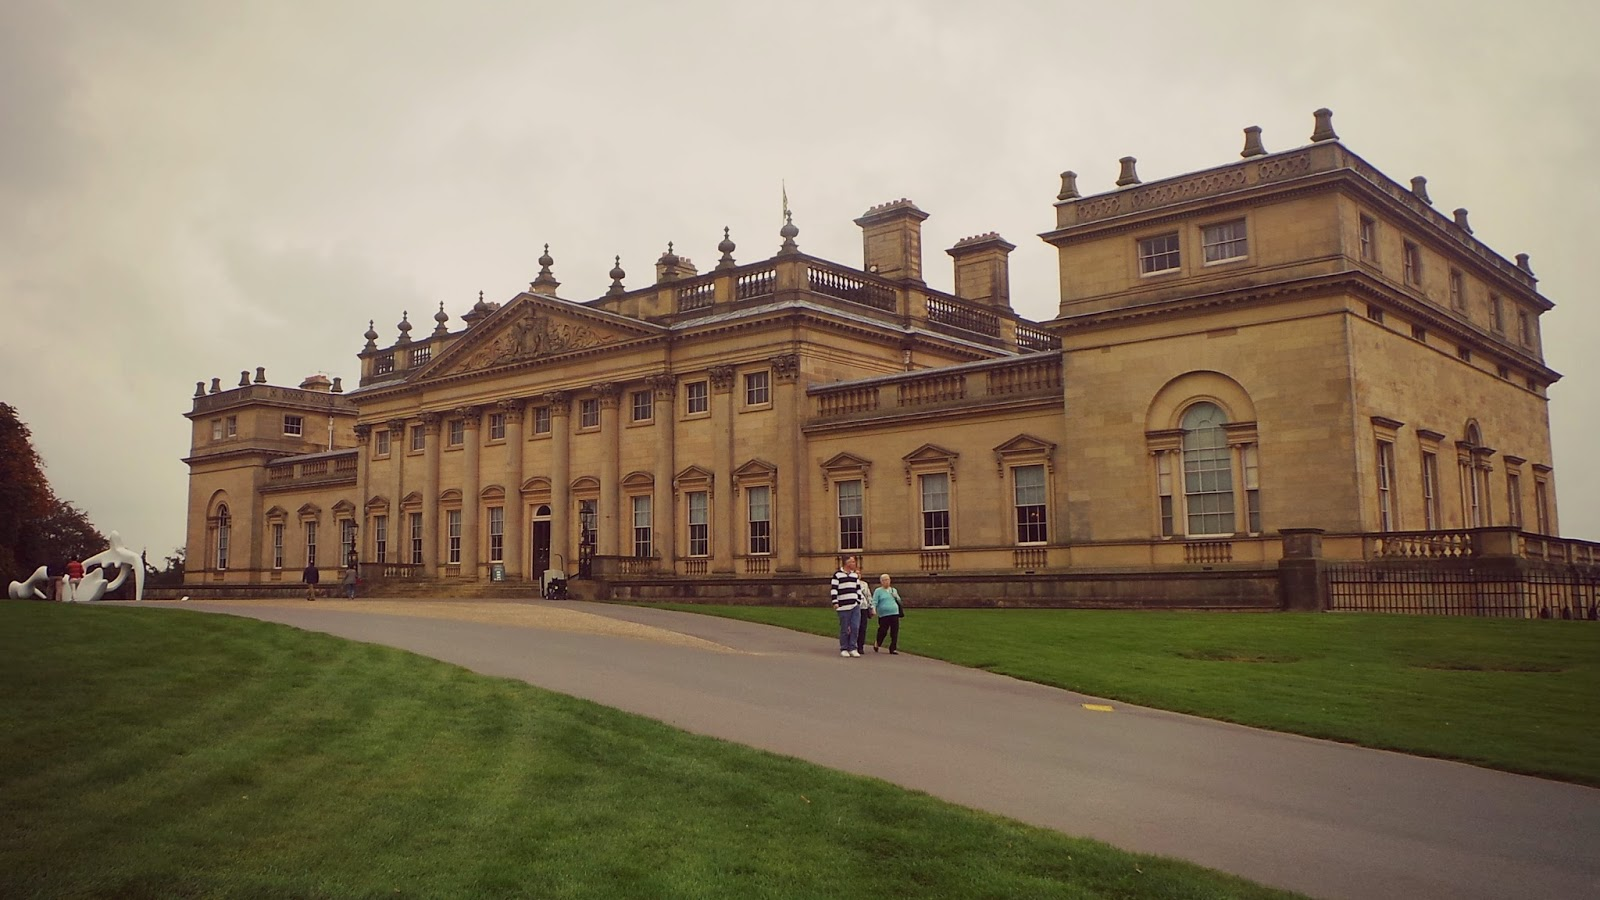 Days out Yorkshire harewood house